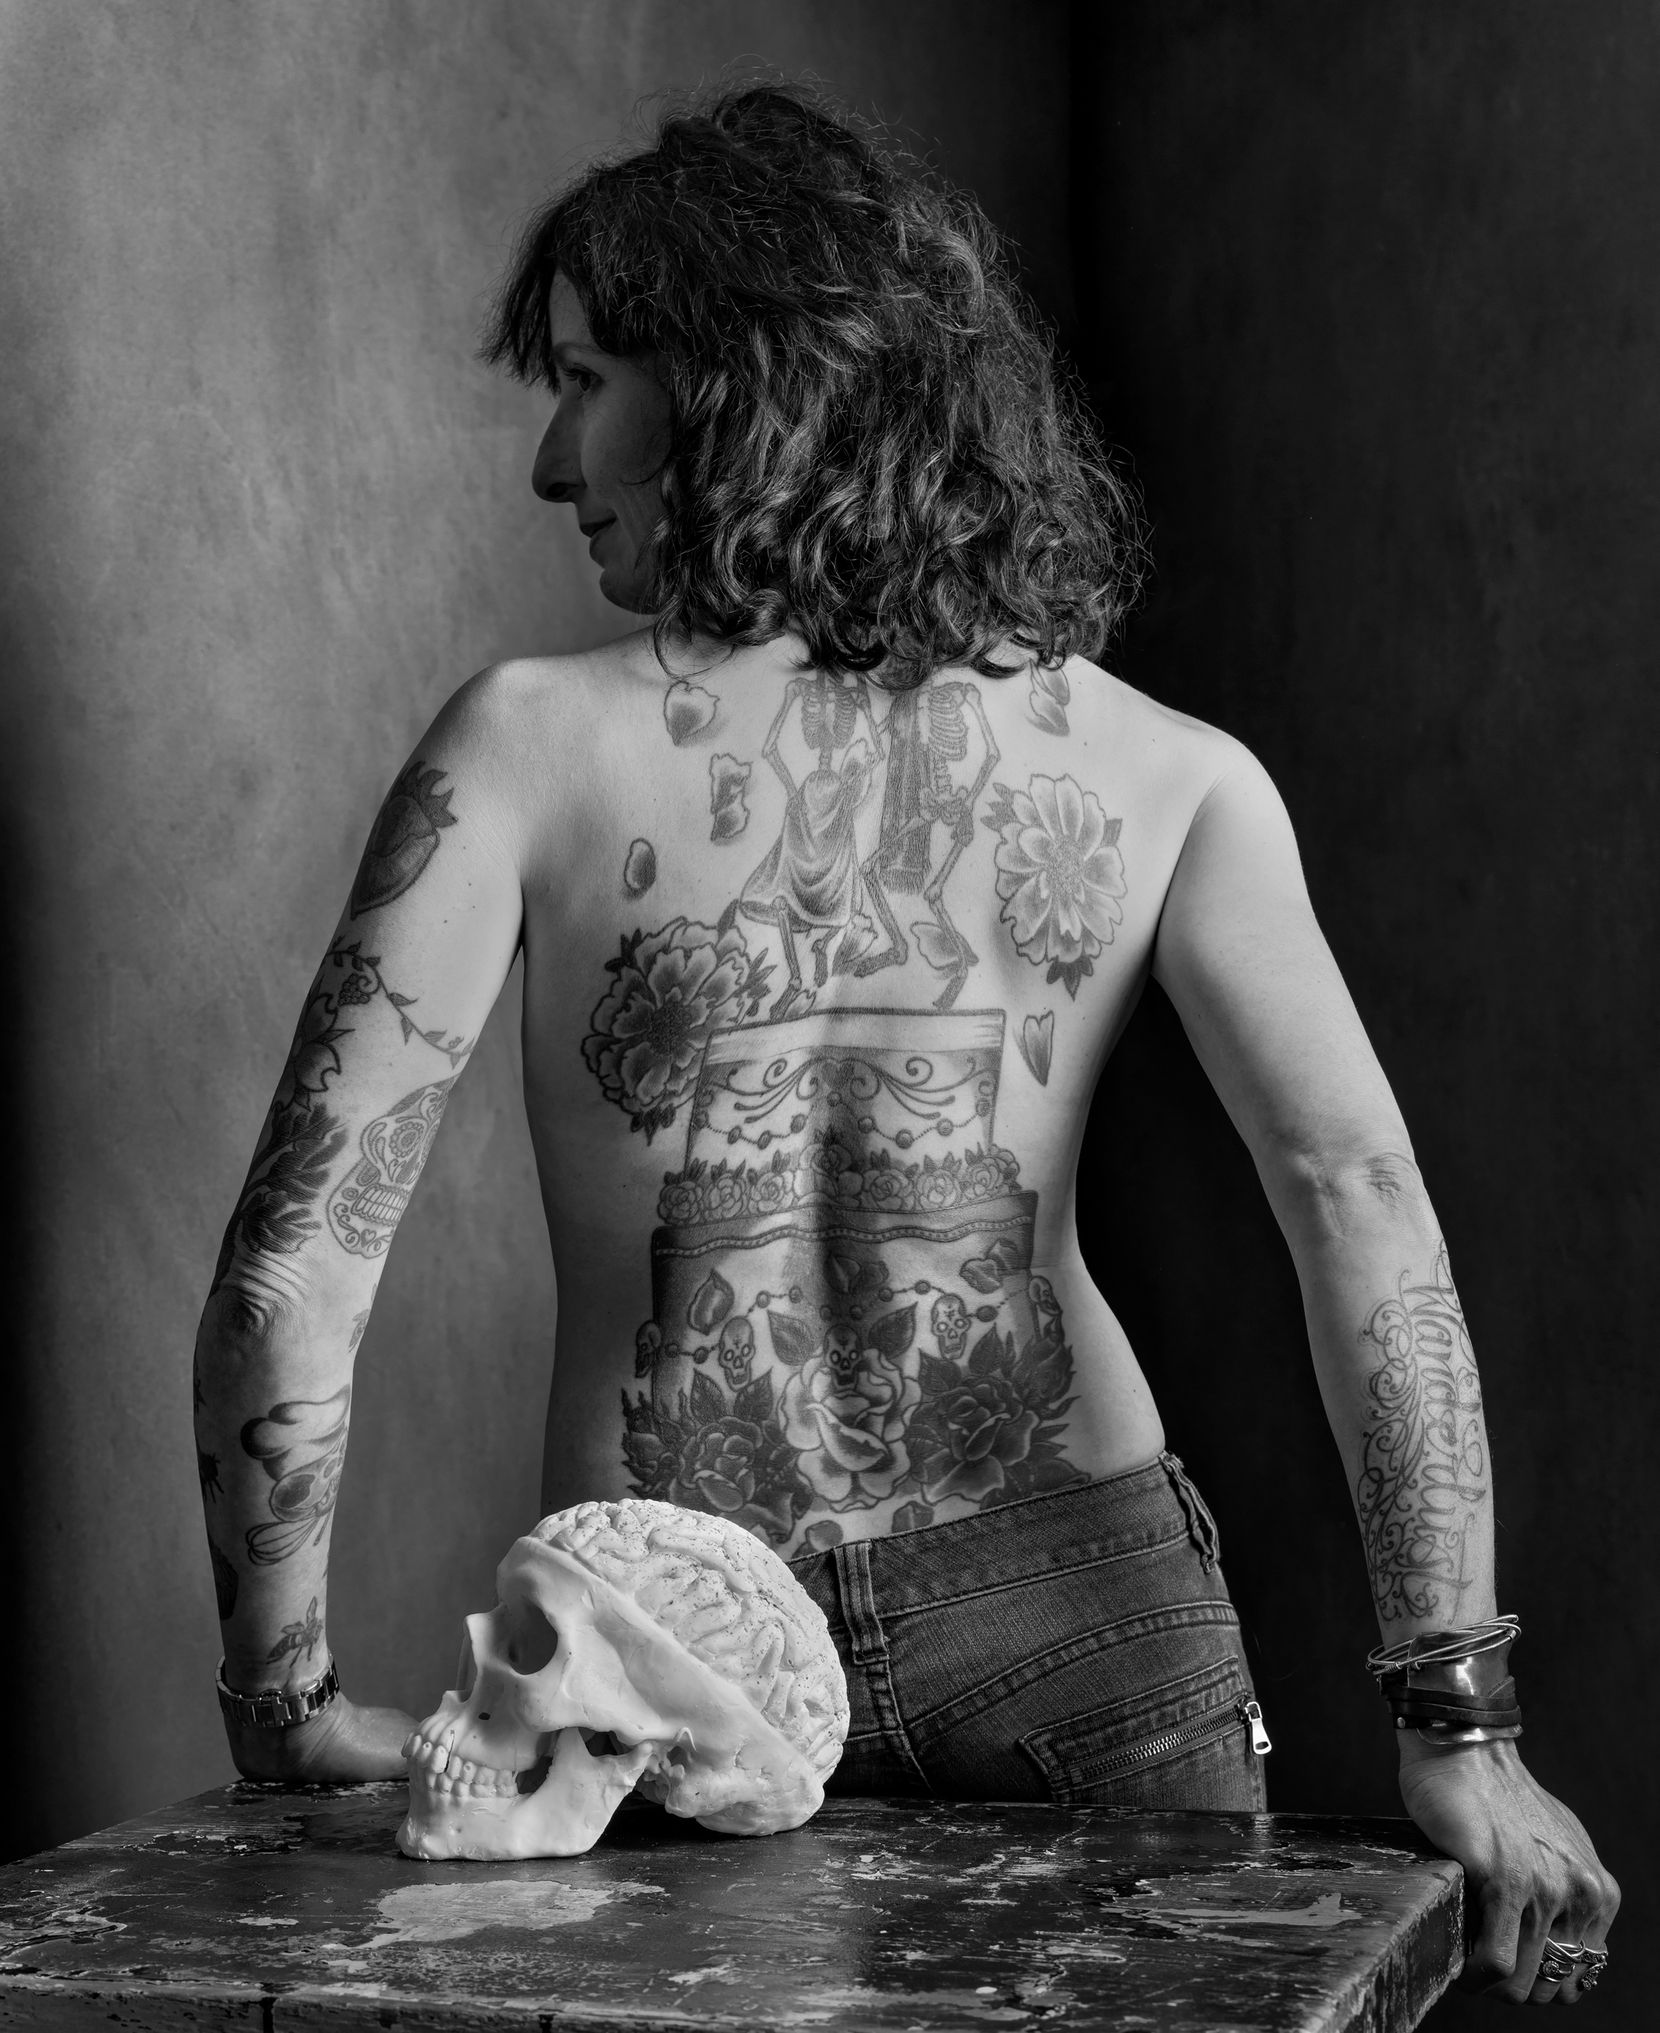 Pastry chef Katherine Clapner reveals her intricate back tattoos in this portrait.